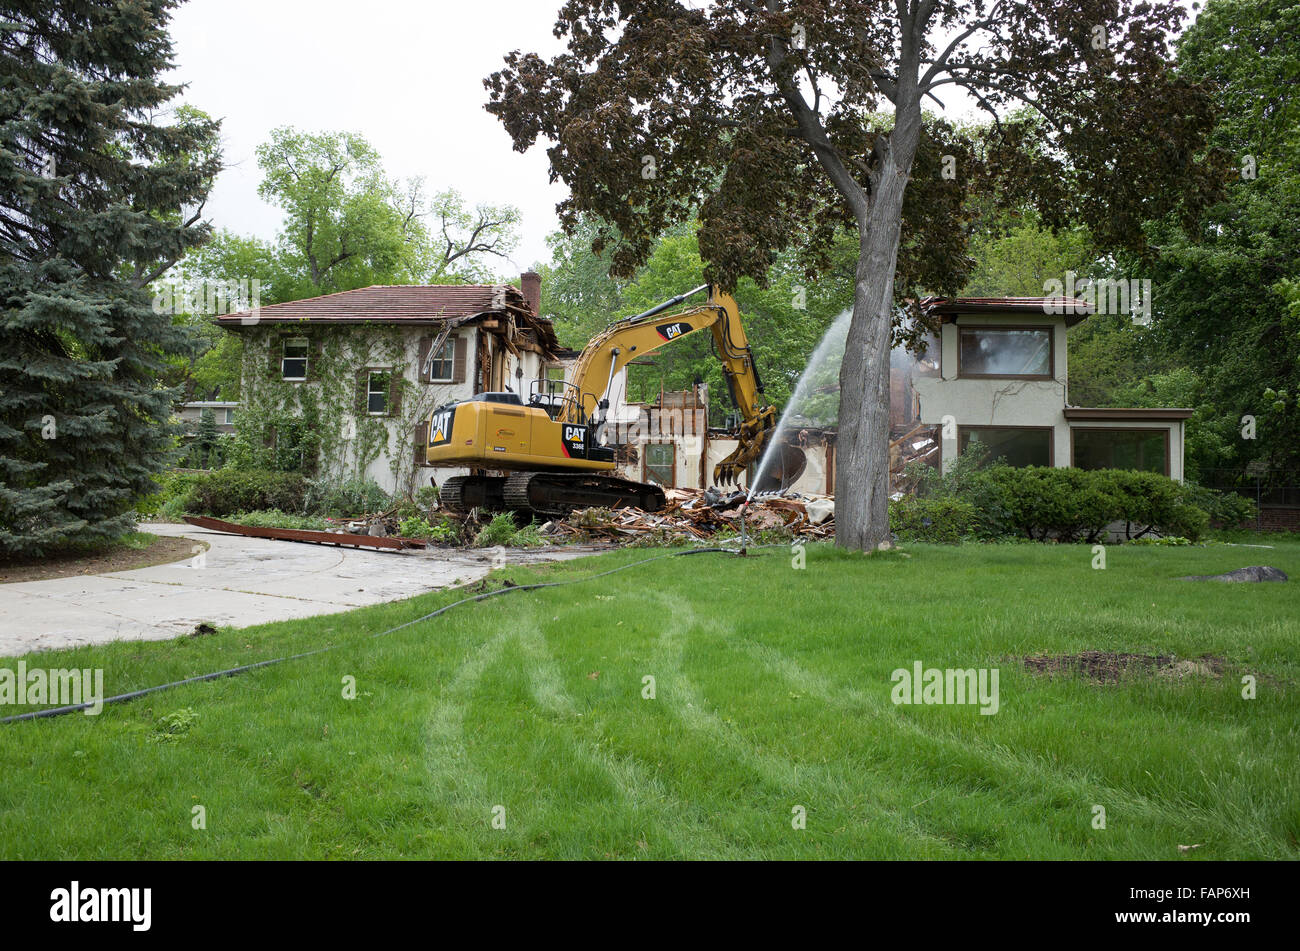 demolition and excavation of city teardown house with a cat 336e